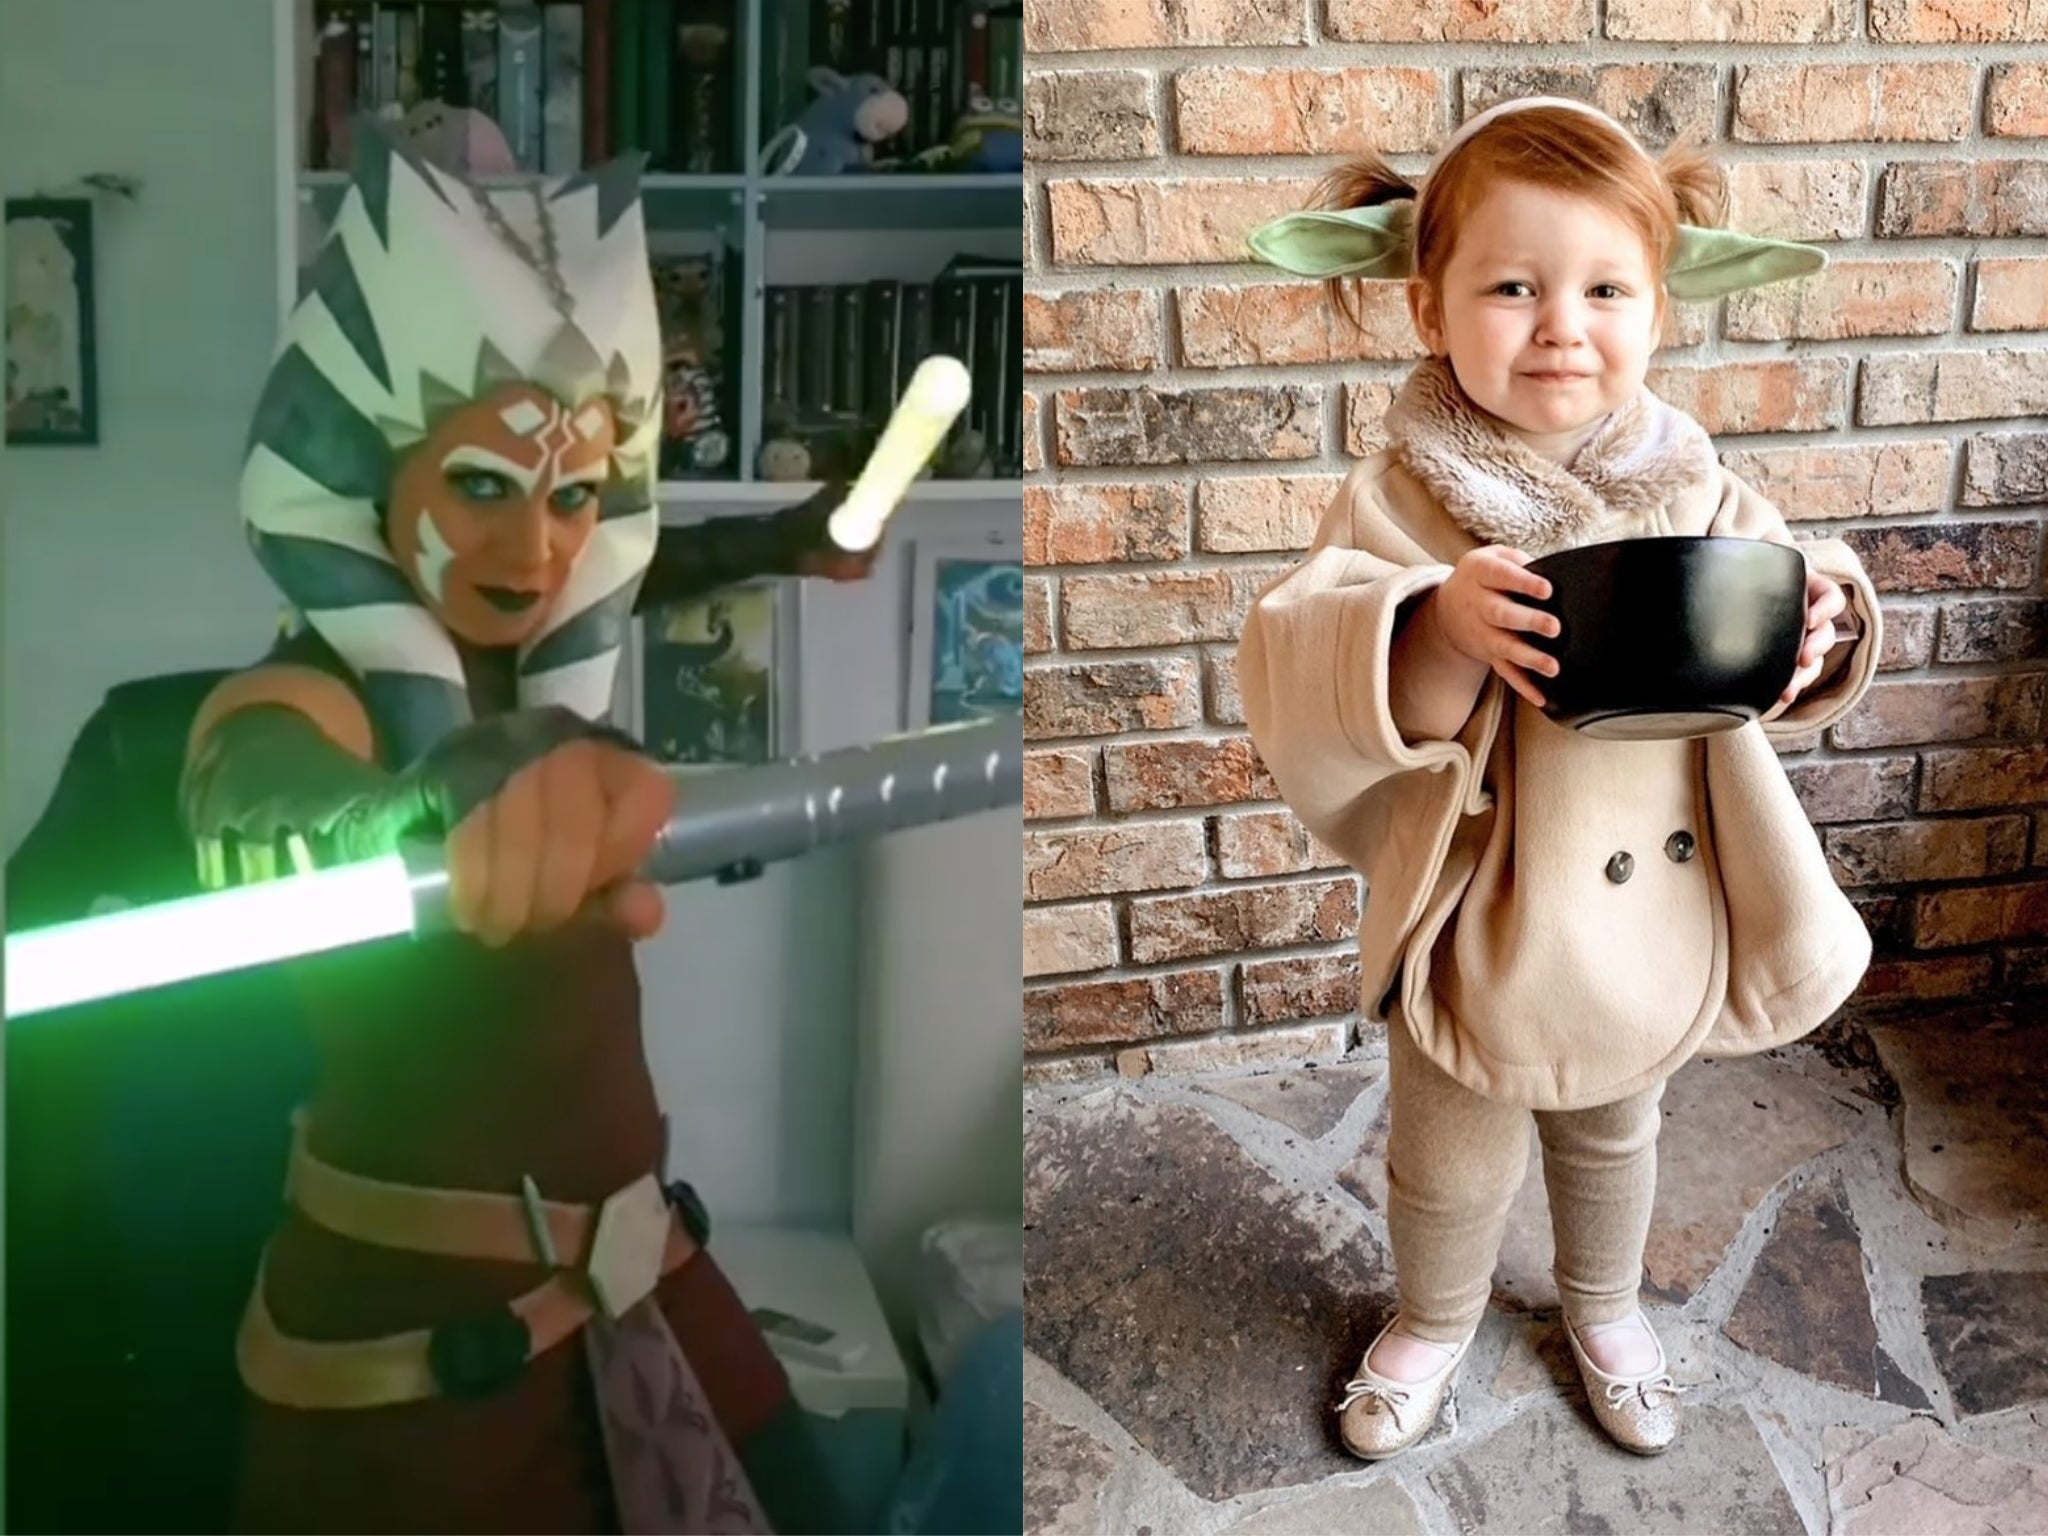 Star Wars Day: Fans share creative costumes to mark May the Fourth